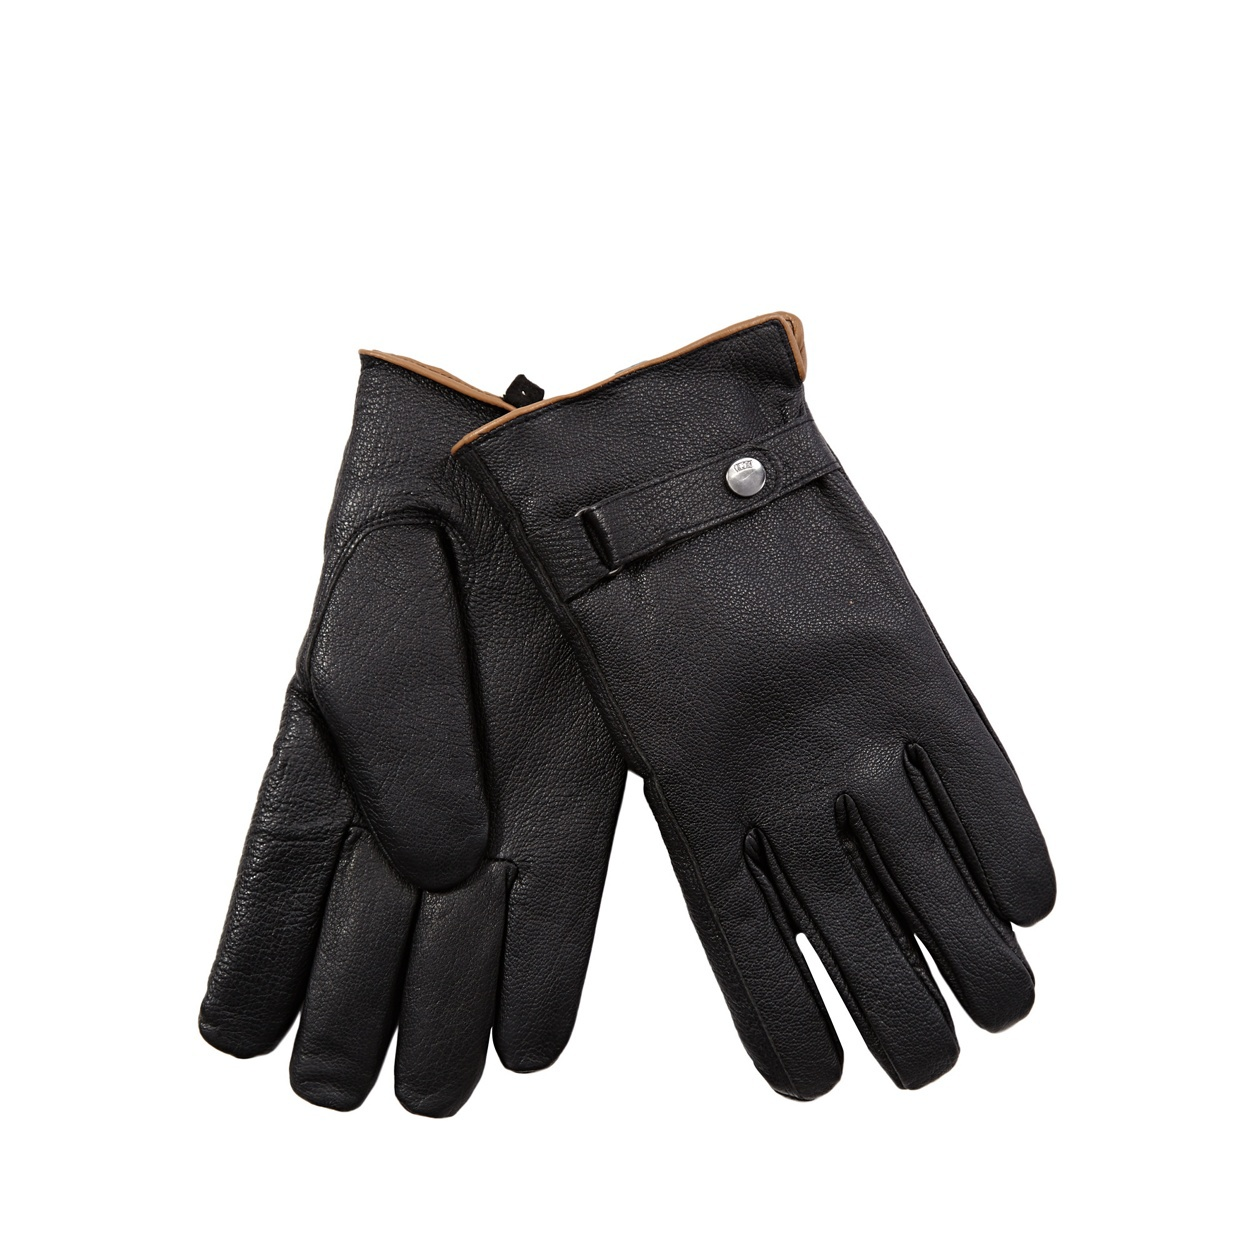 Mens leather gloves at debenhams - About This Item